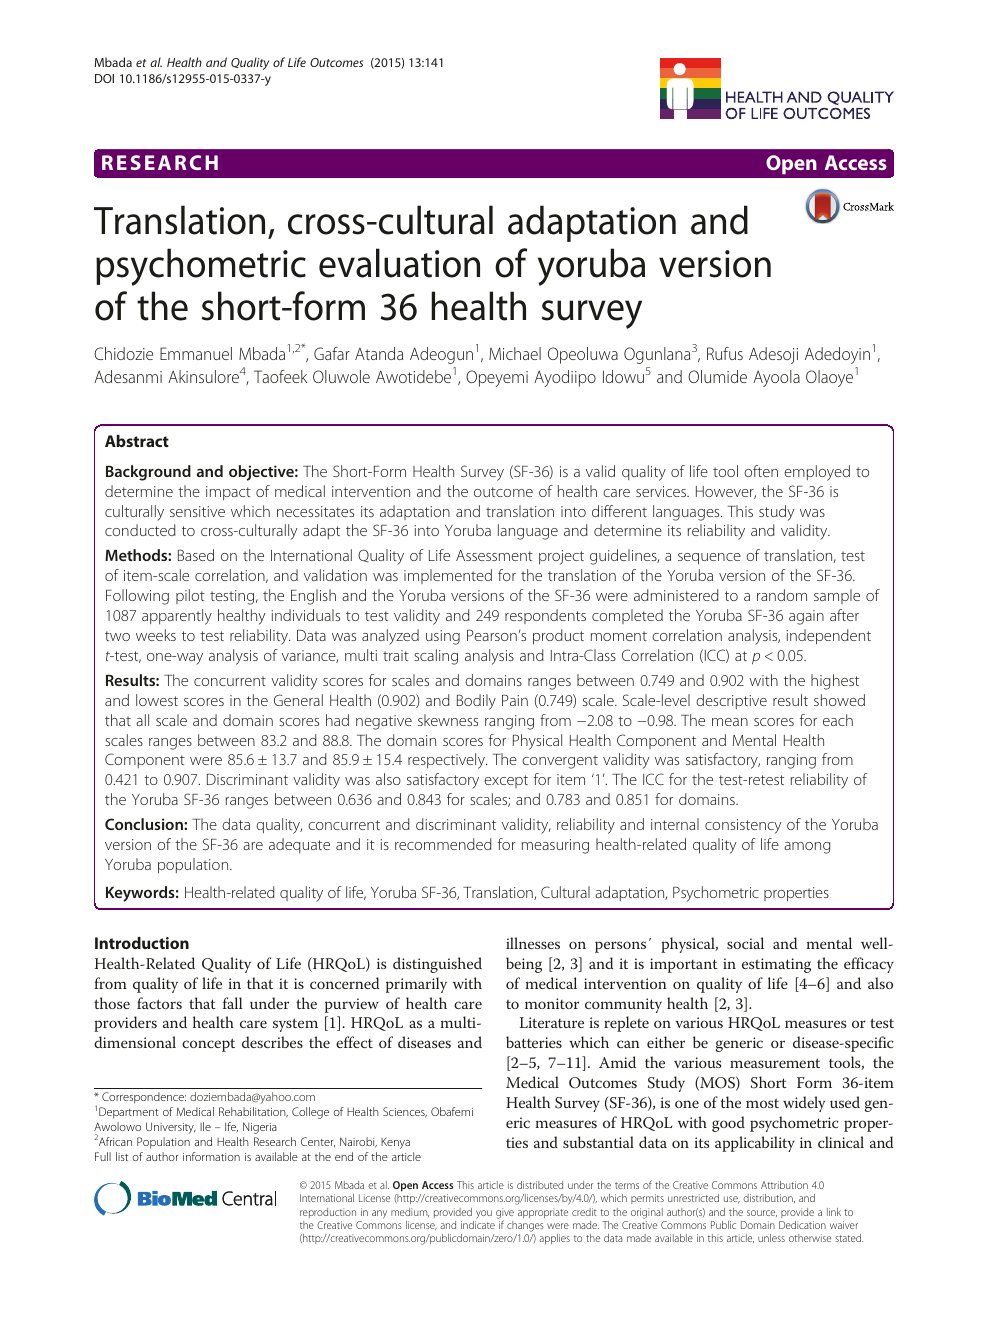 Translation, cross-cultural adaptation and psychometric